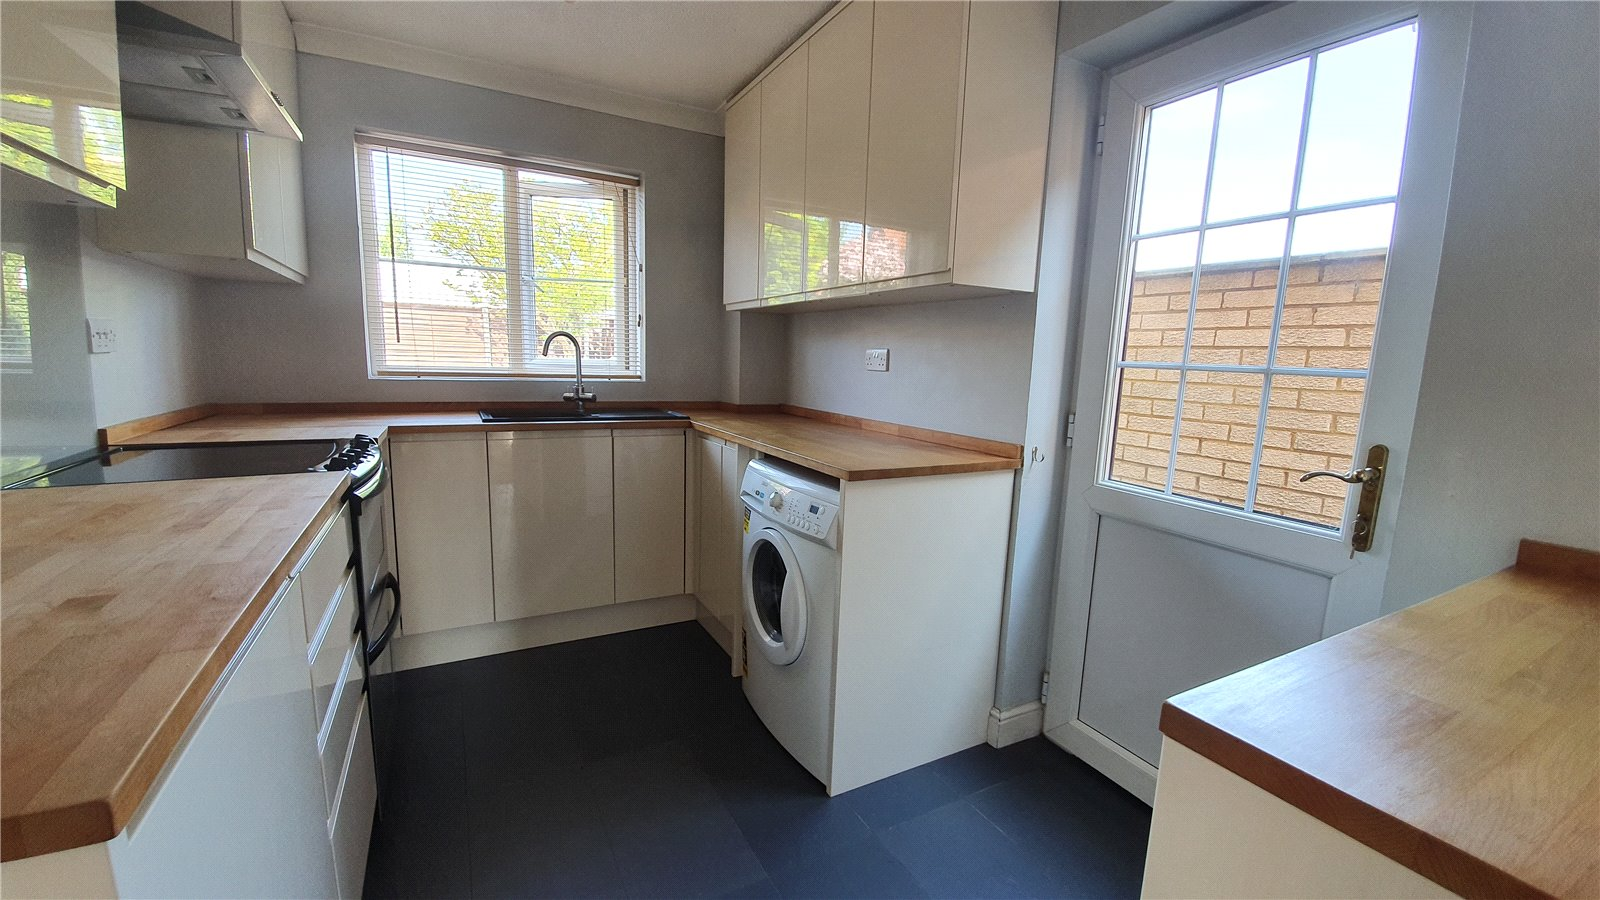 3 bed house for sale in Farm Close, Wyboston 2